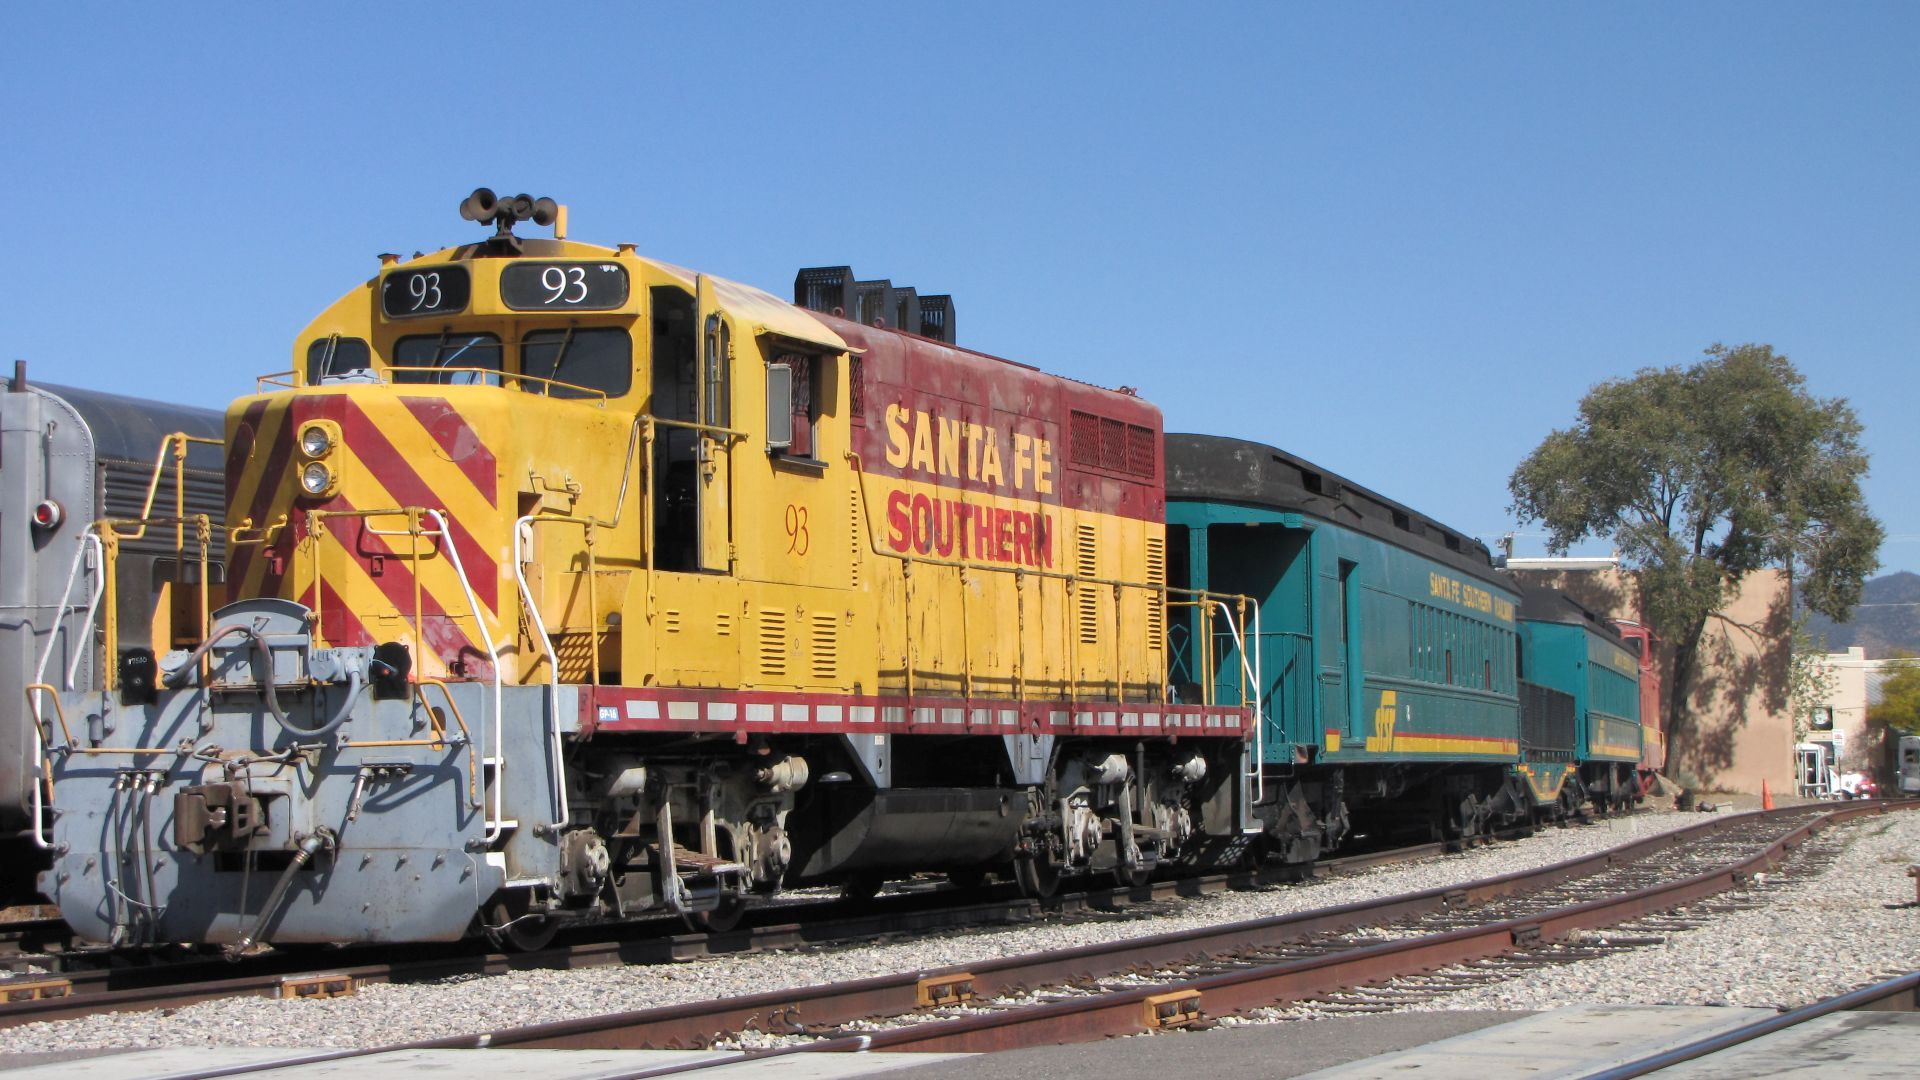 Santa Fe, NM, USA - Choo choo